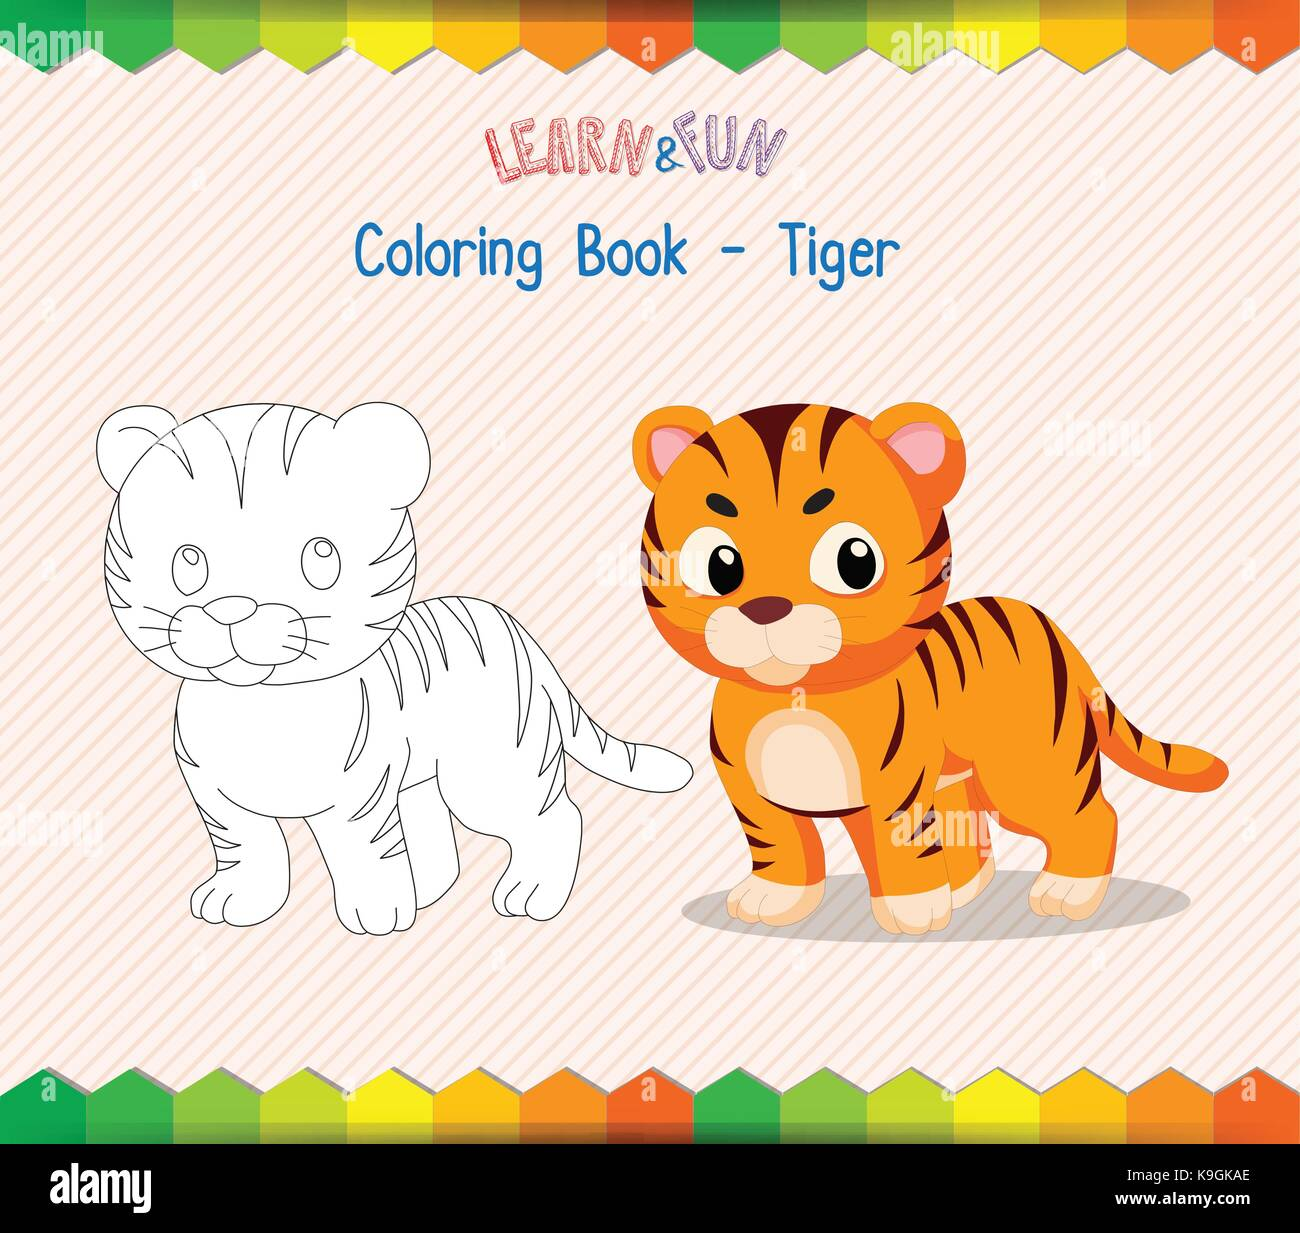 tiger coloring book educational game stock vector art illustration